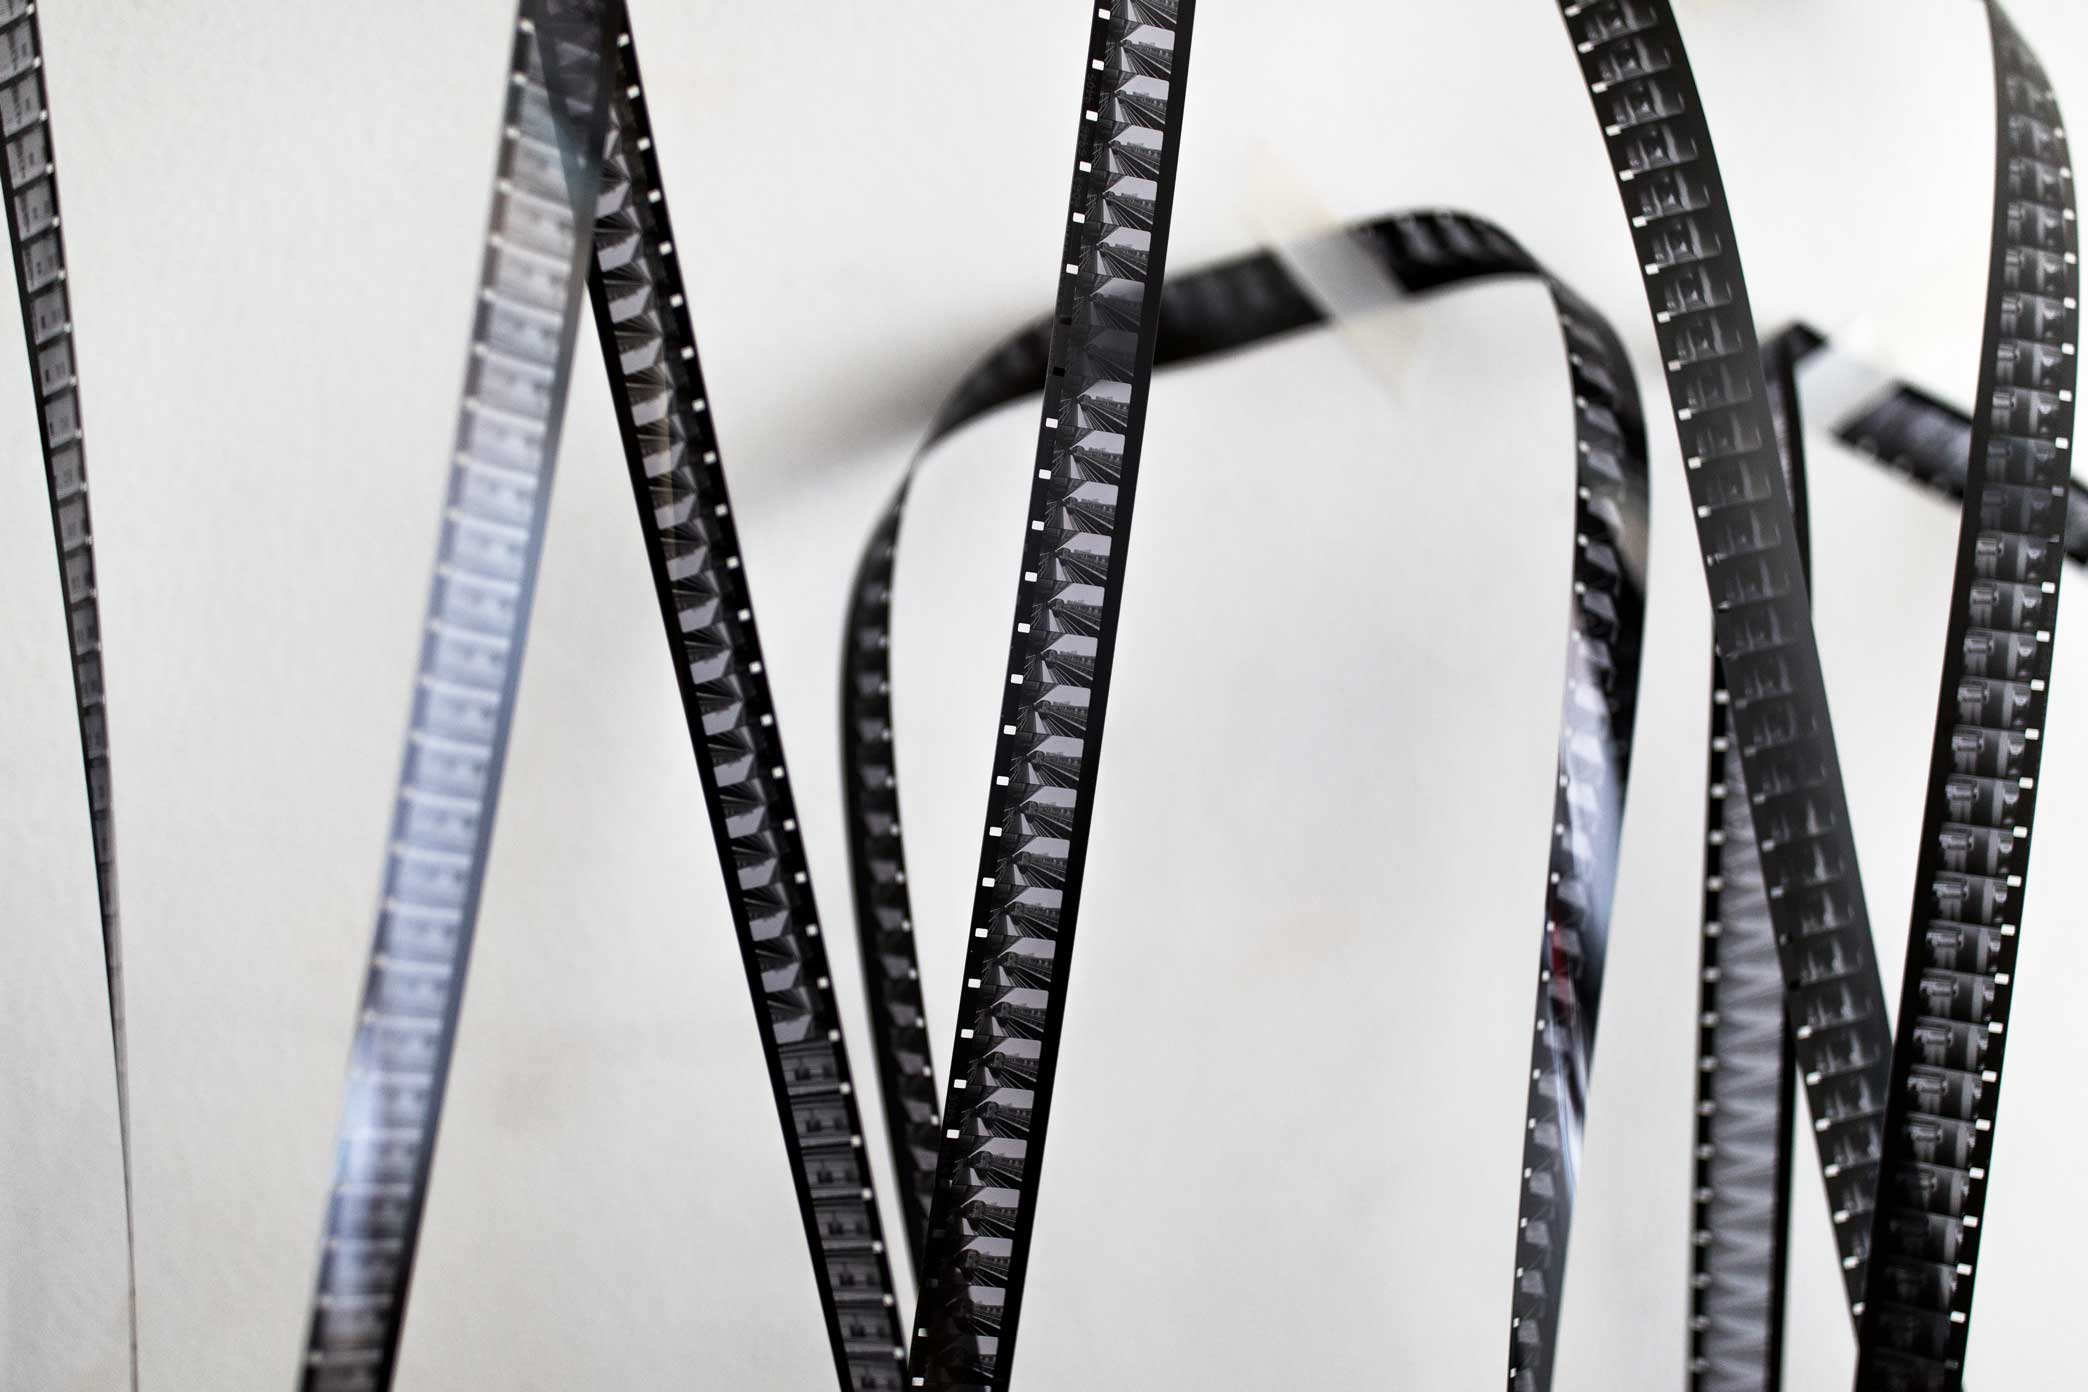 Strips of film hang on the wall of the Mono No Aware workshop space in Brooklyn.